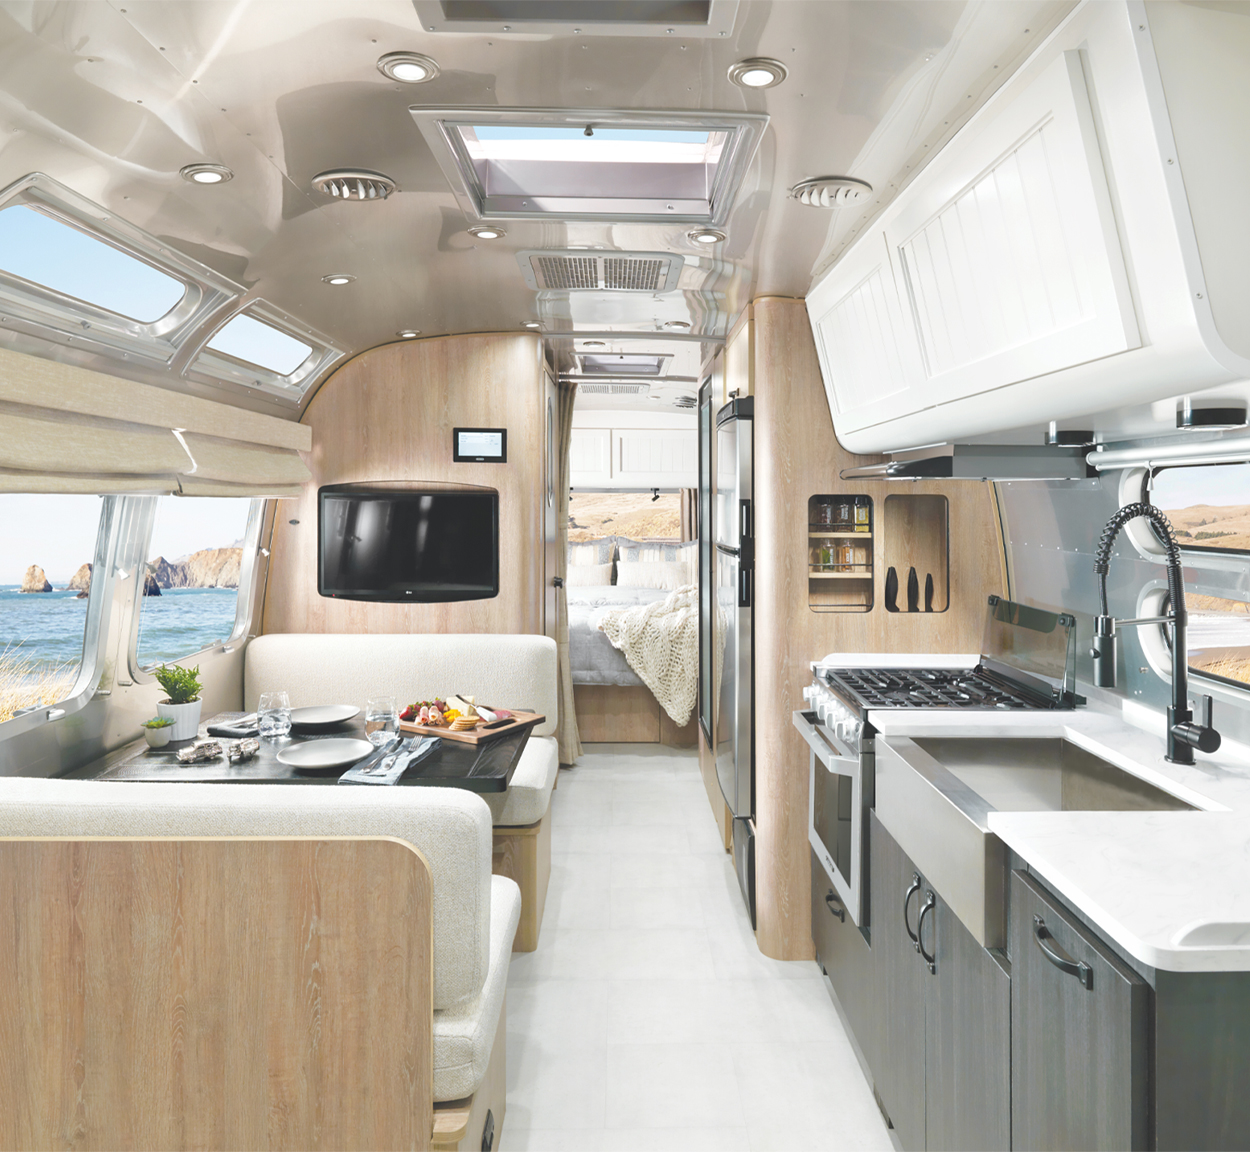 Pottery Barn Travel Trailer Overview